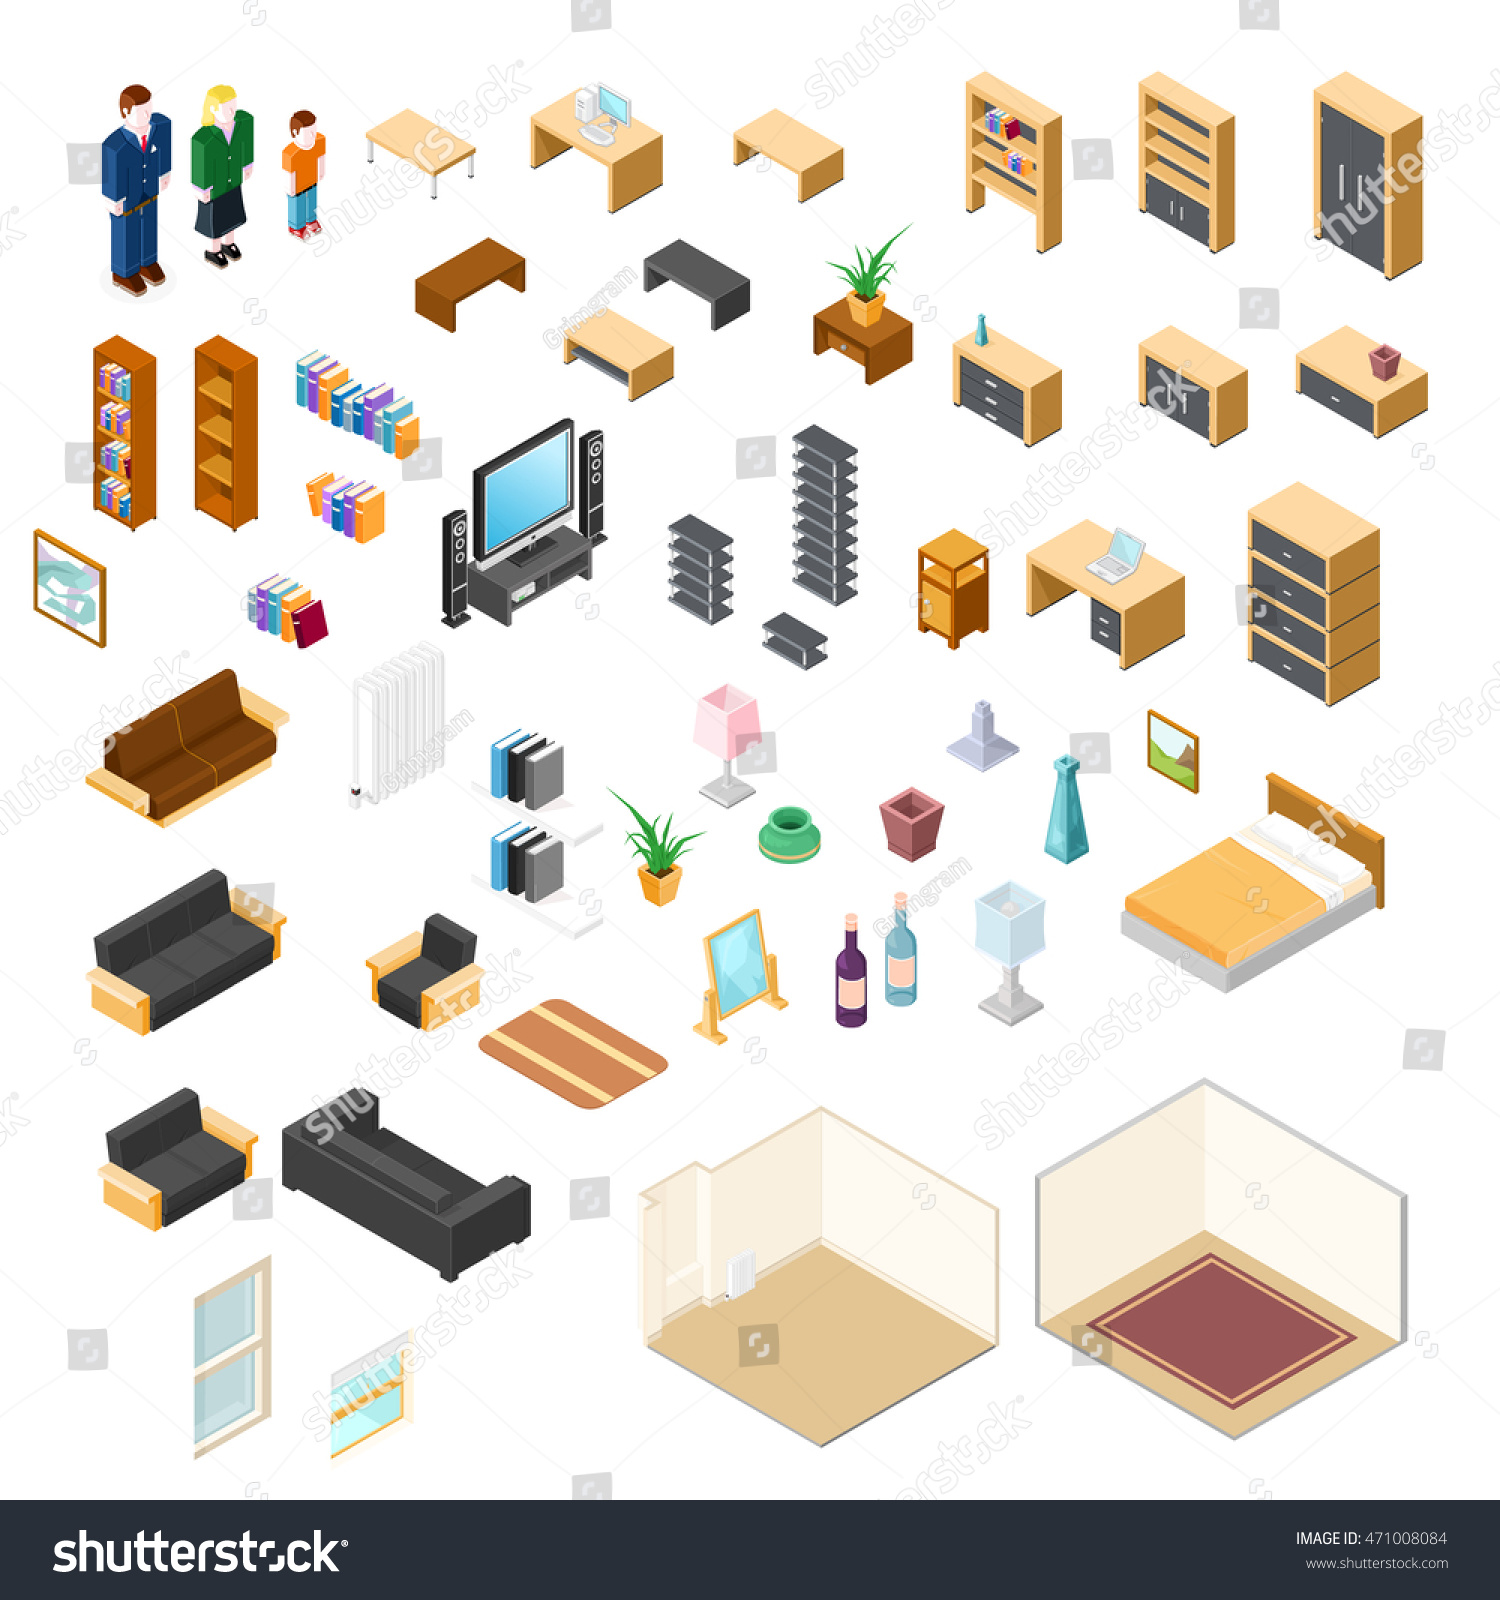 Vector Illustration Isometric Furniture Elements Objects ...